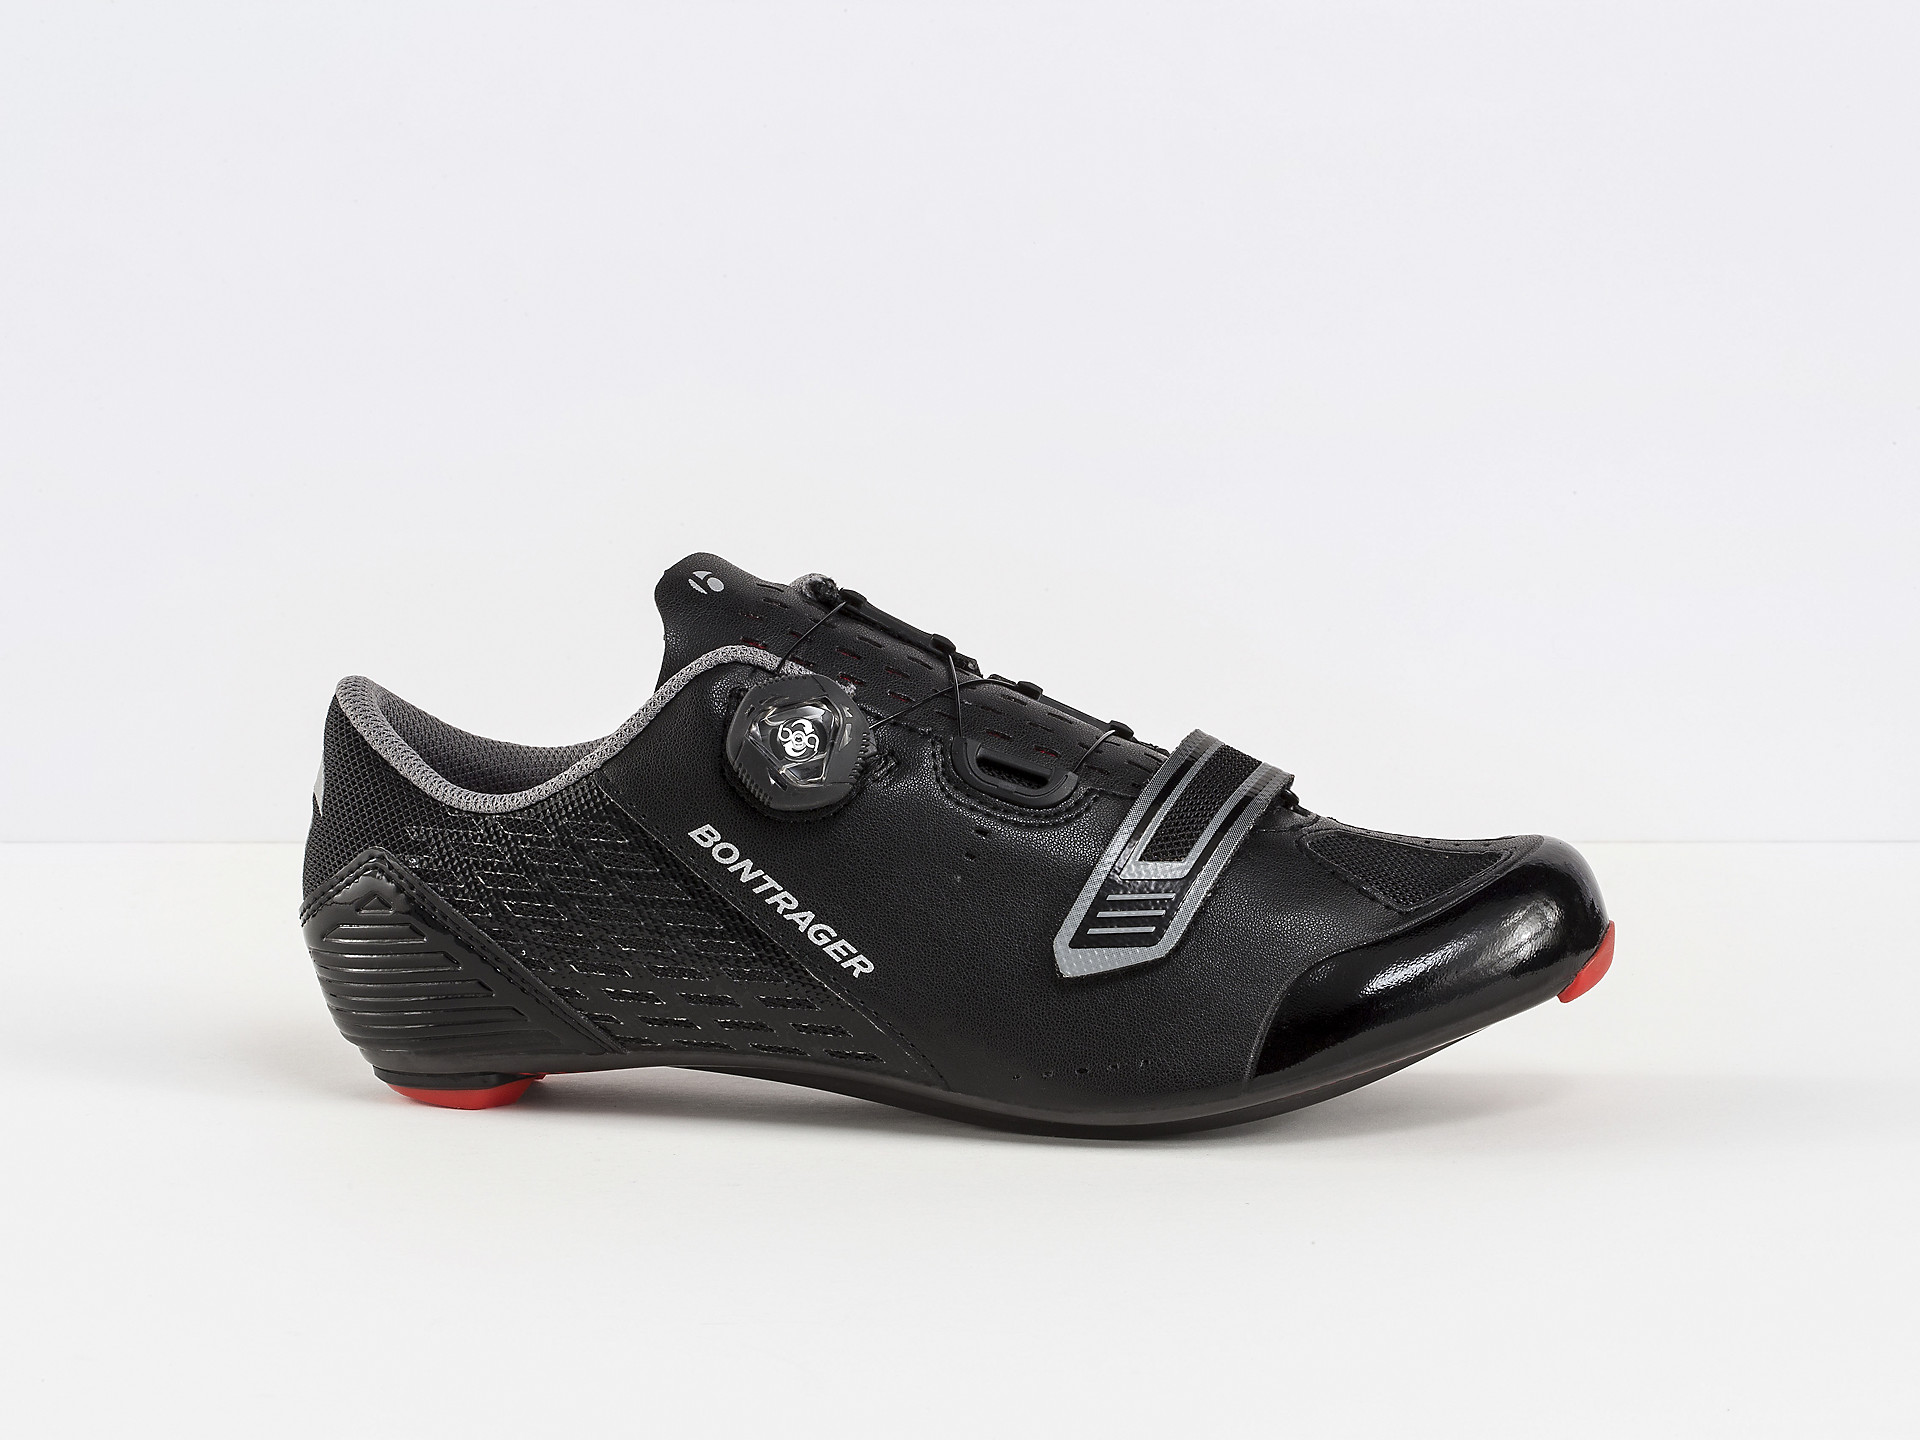 Bontrager Chaussures VelocisTrek Chaussures Chaussures VelocisTrek Bikesca Route Route Bikesca Route Bontrager VelocisTrek Bontrager 8wOkP0NnXZ